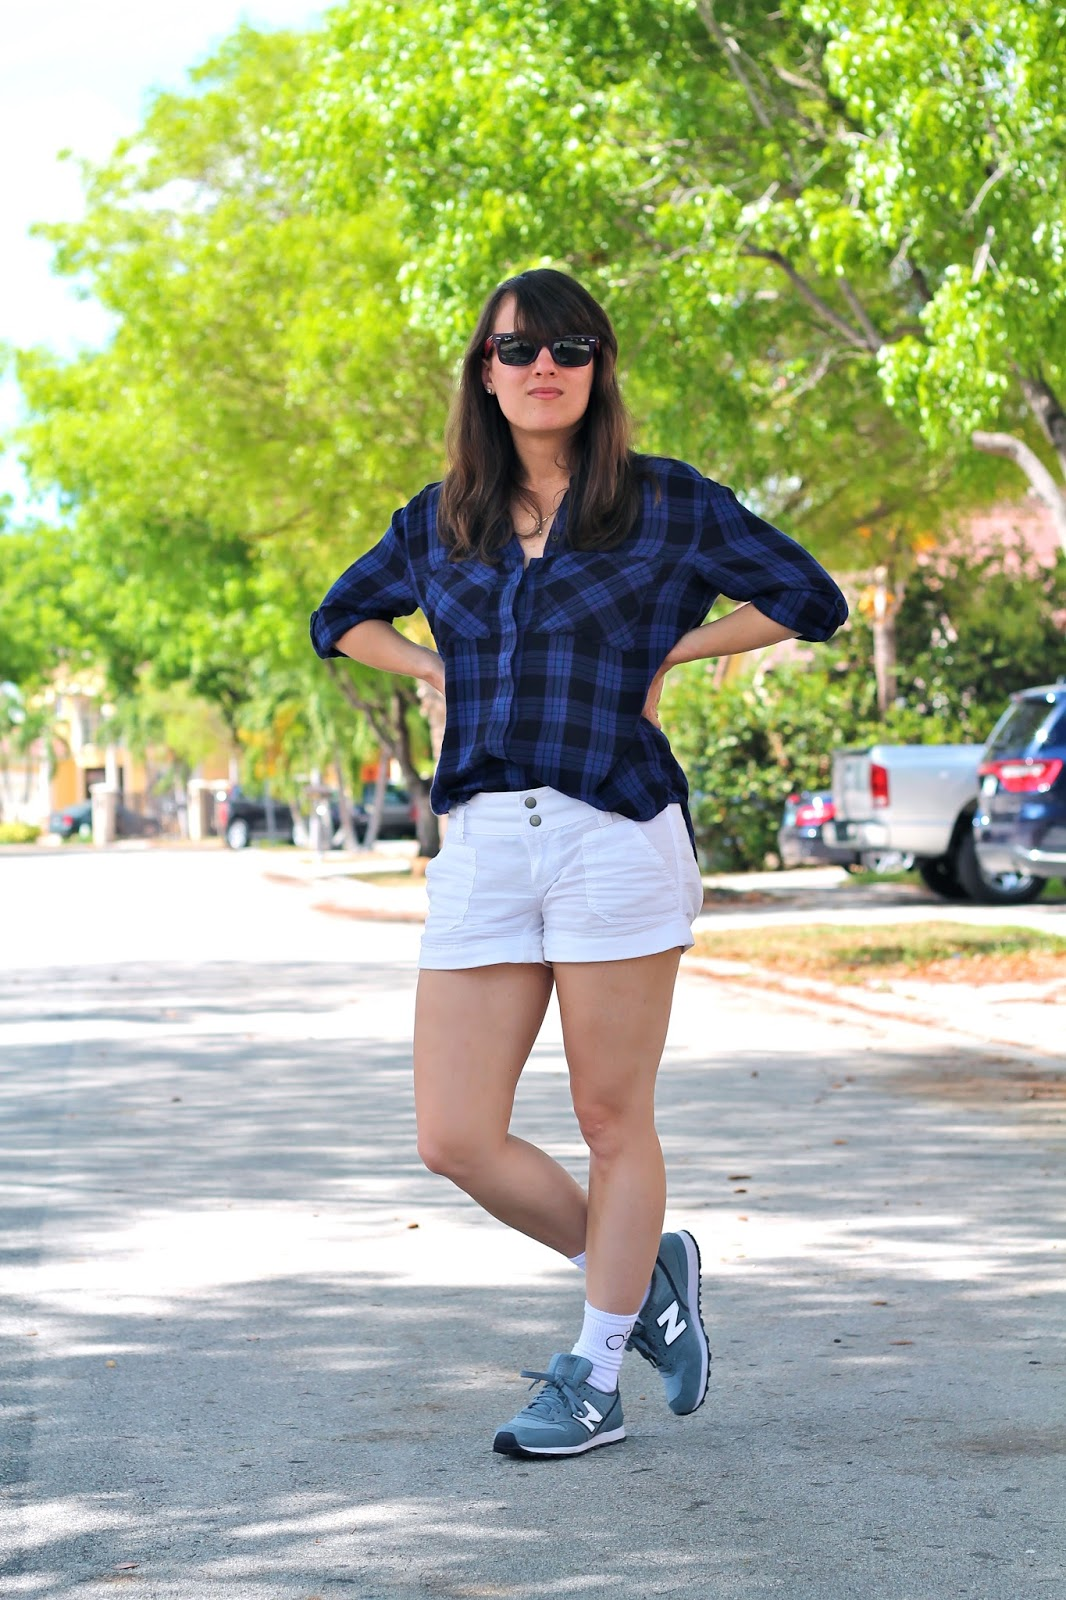 capsule wardrobe, capsule collection, New Balance, Ray-Ban, Target, Love Alice Louise, Express, Nordstrom, Fashion blogger, style blogger, fashion blog, style blog, Miami fashion blogger, Miami style, summer style, athleisure